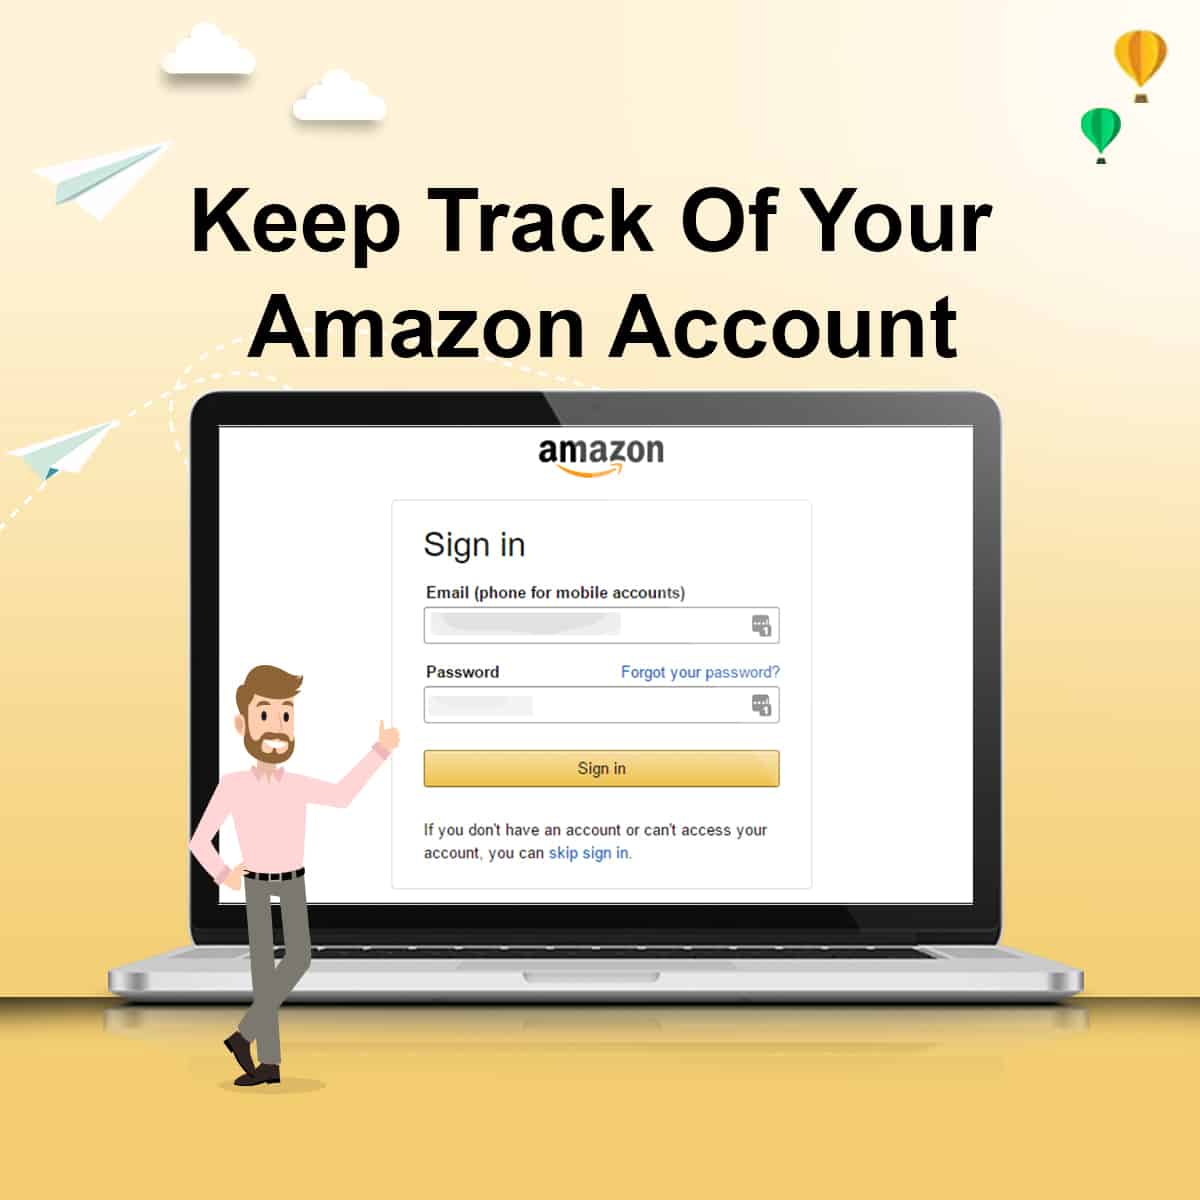 Keep Track Of Your Amazon Account